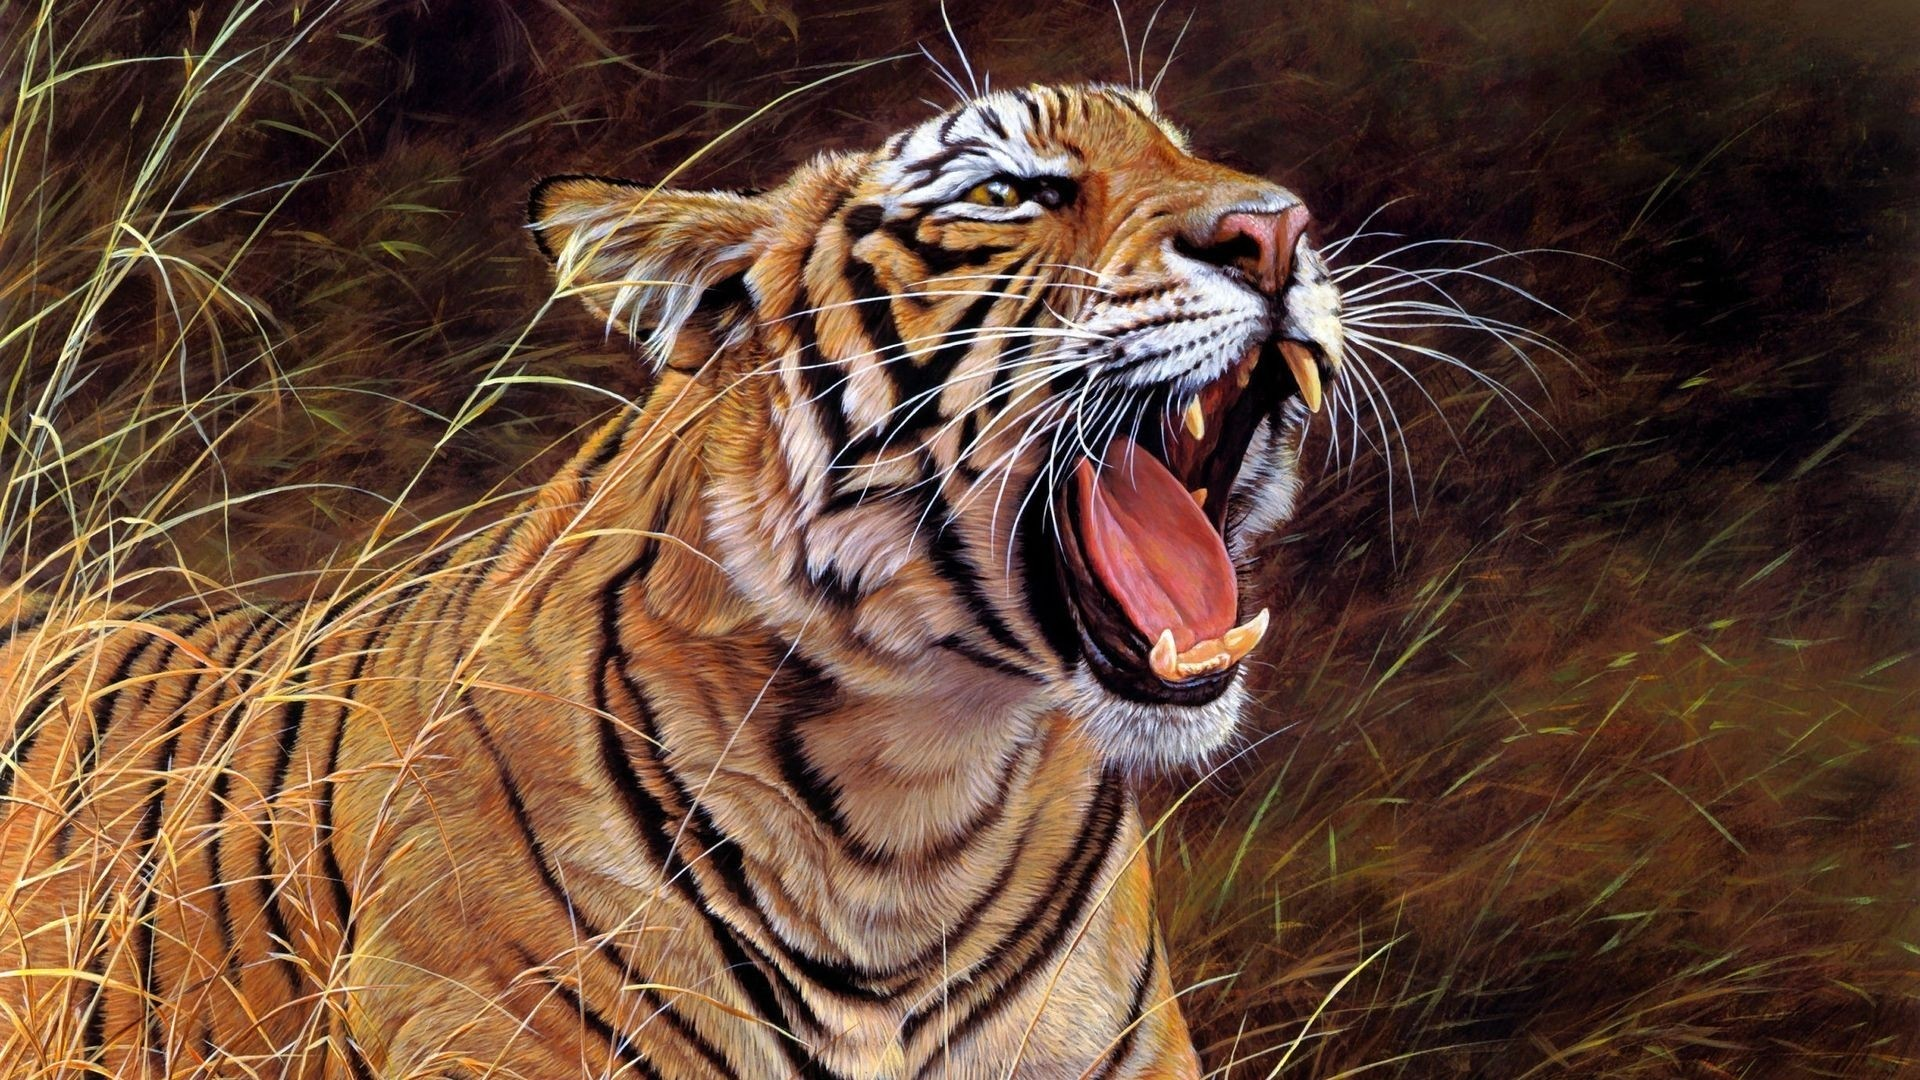 Hd Tiger Pictures Tiger Wallpapers: 1920x1080 Tiger Wallpaper Full HD (65+ Images